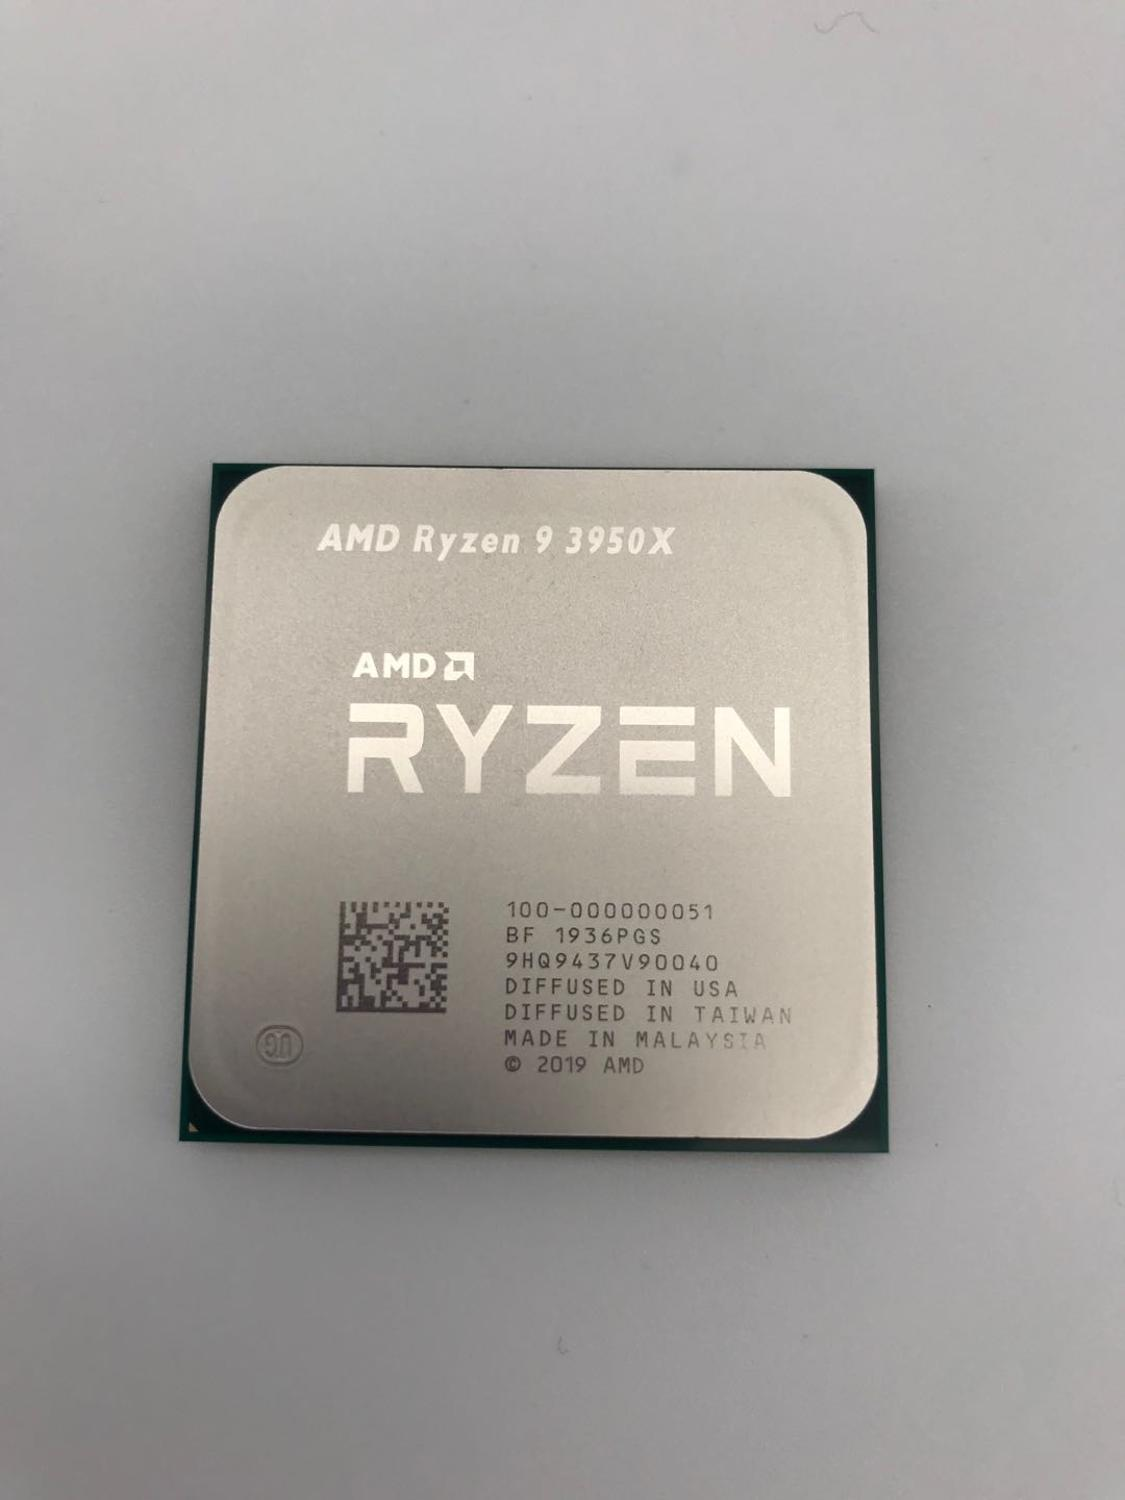 Amd Ryzen 9 3900x R9 3950x 3 5 Ghz 16 Core 32 Thread Cpu Processor 7nm L3 64m 100 000000051 Socket Am4 Cpus Aliexpress